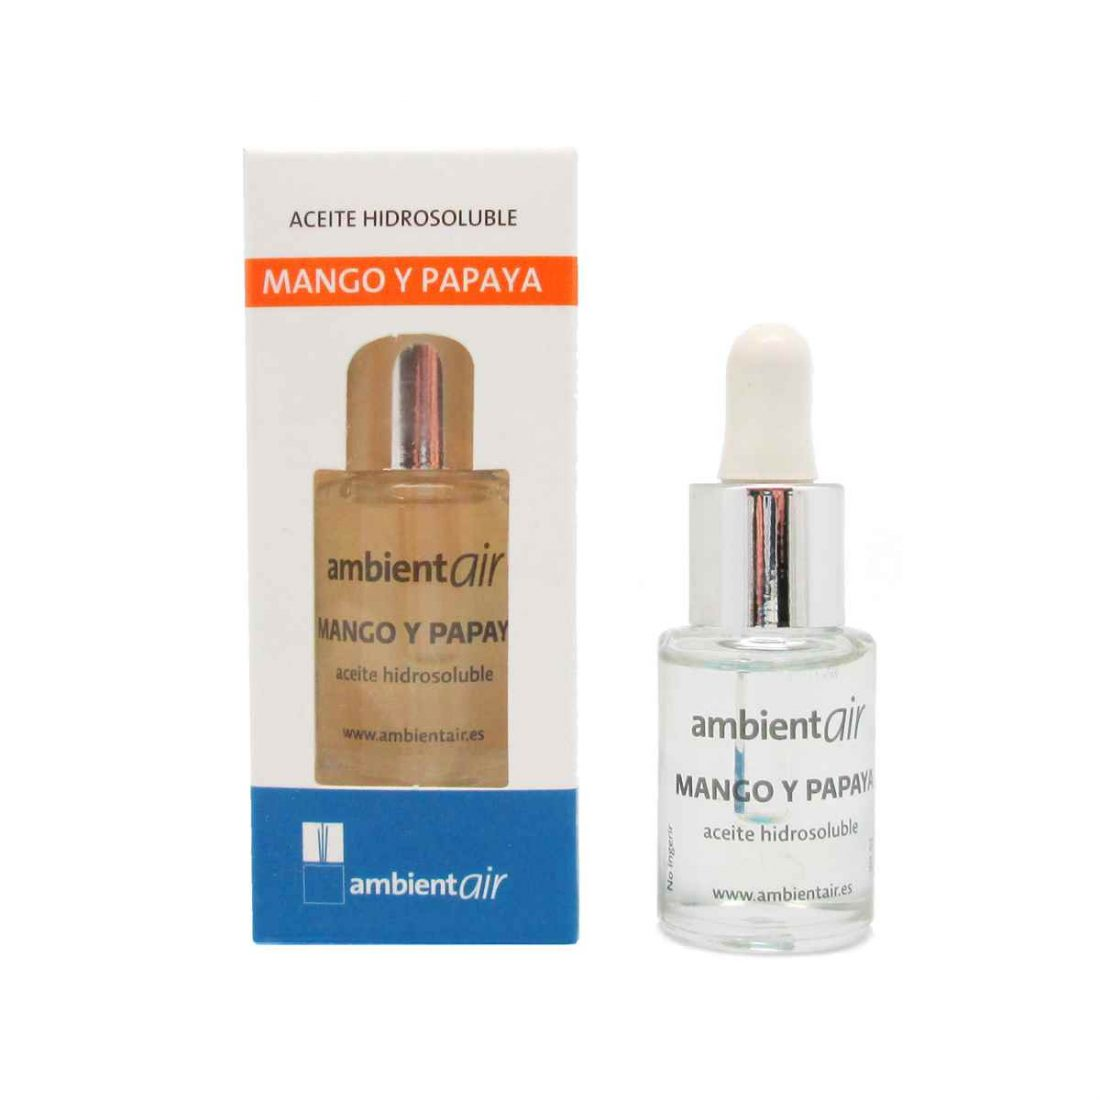 Ambientair Classic Aceite esencial Aroma Mango y Papaya 15ml